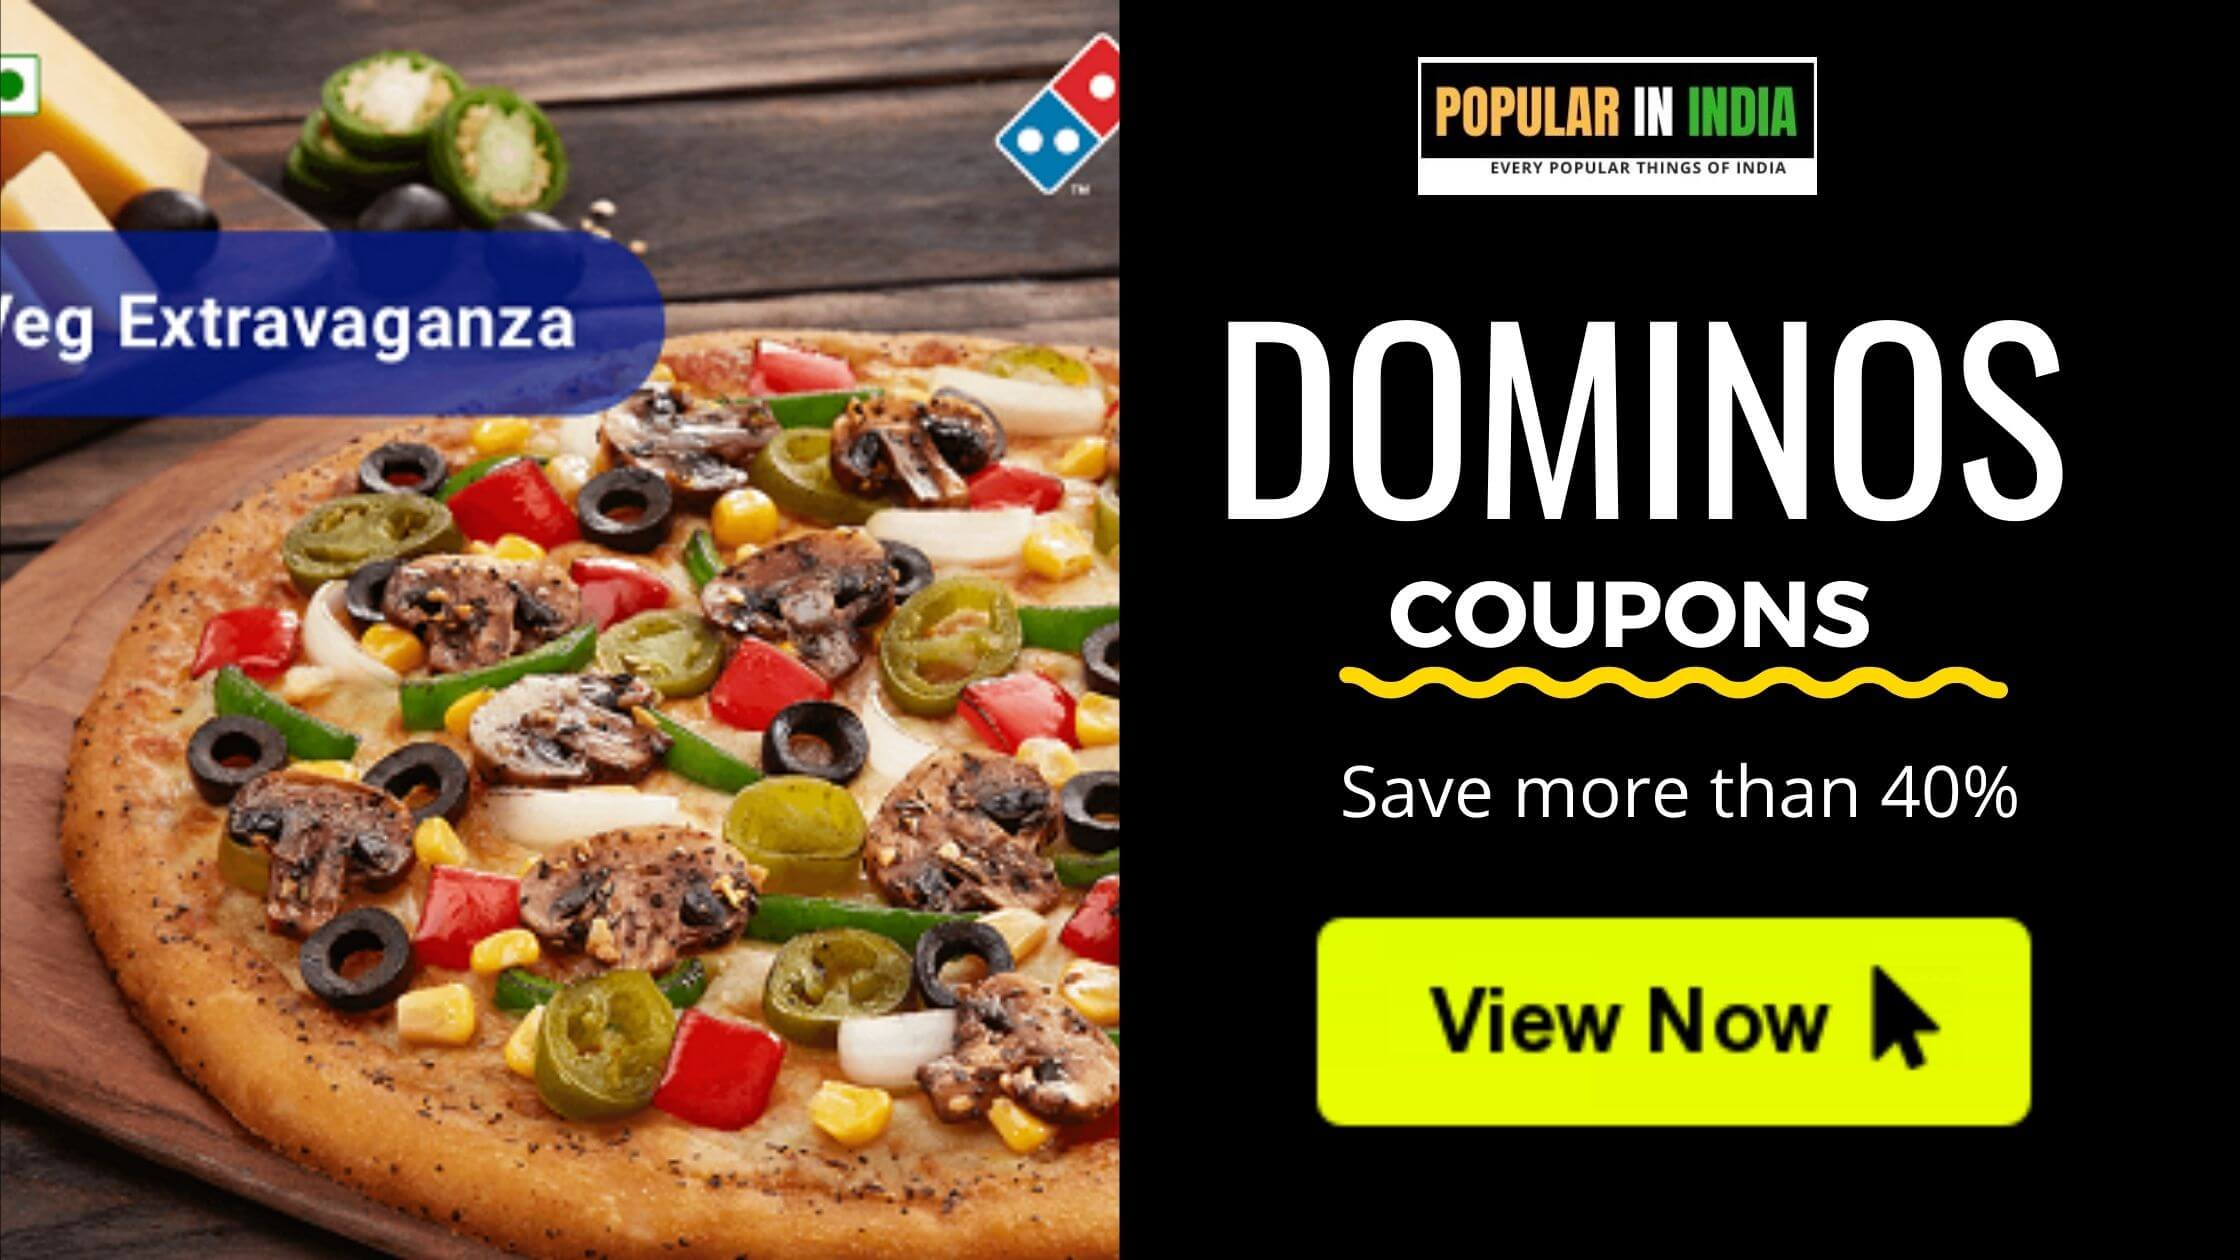 Today's Dominos Coupon Popular in India